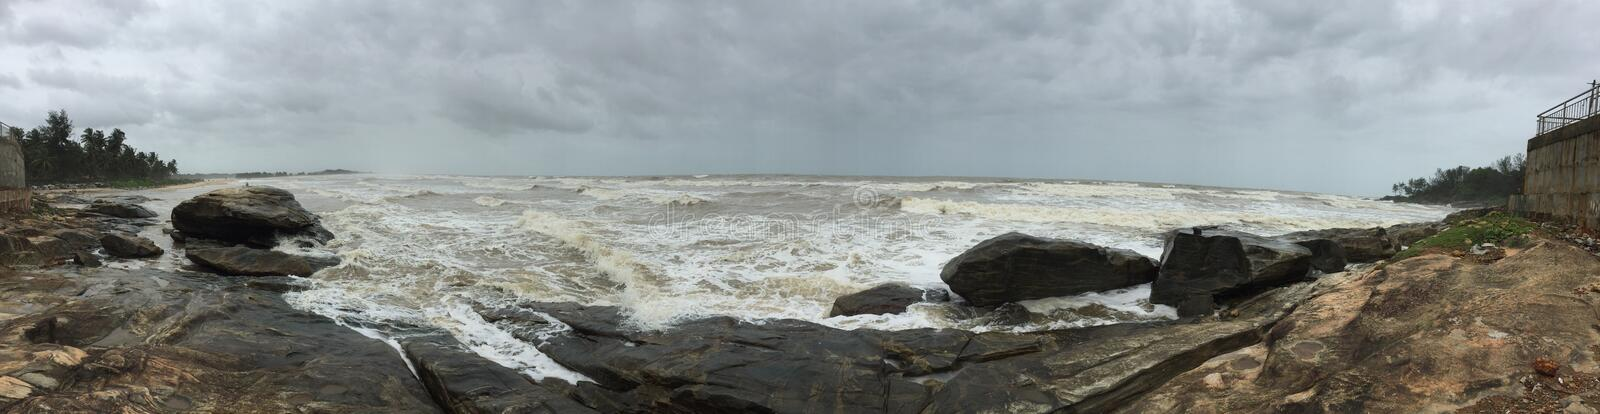 Panoramic view of the rocky beach at Bhatkal, Western Kary stock images